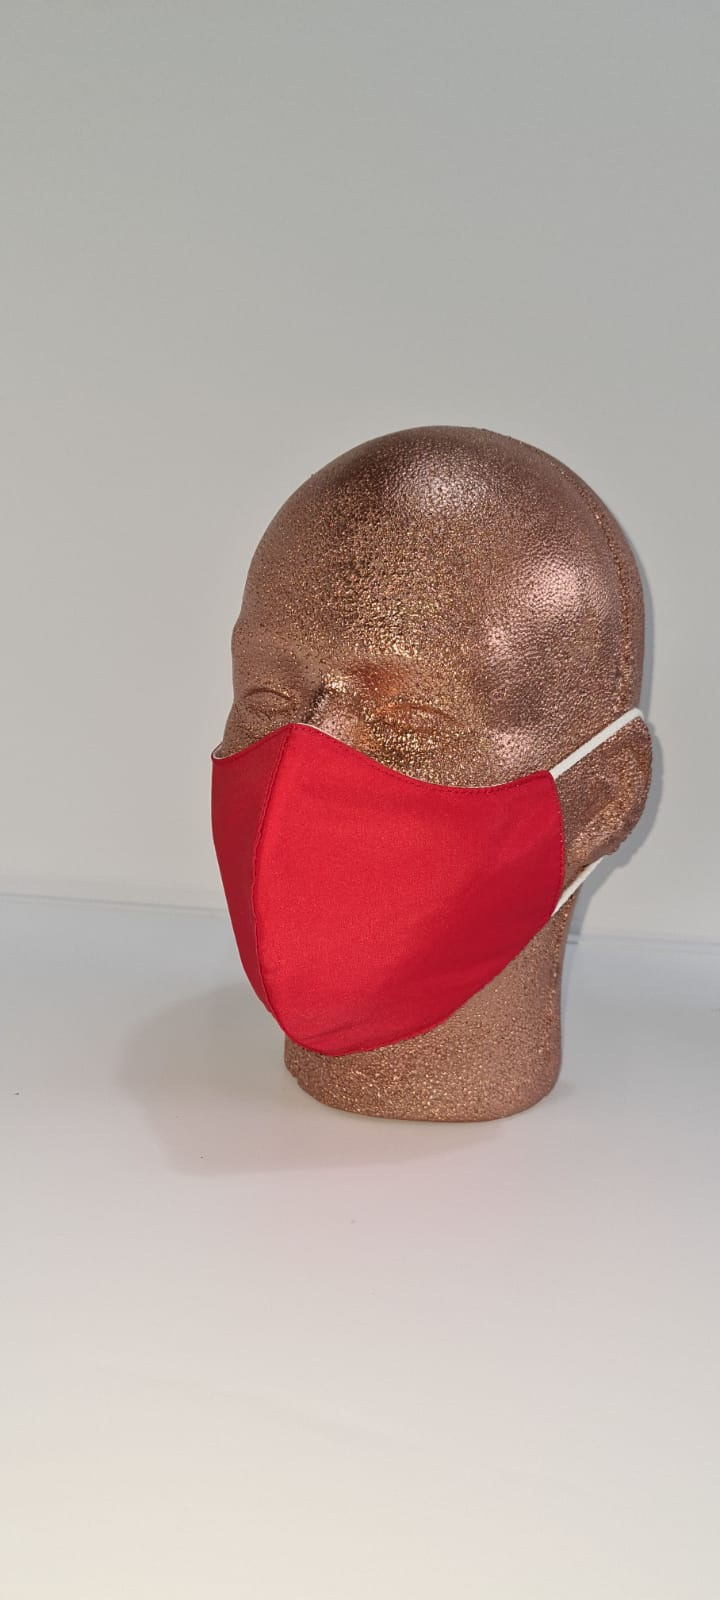 REUSABLE FACE COVER Image